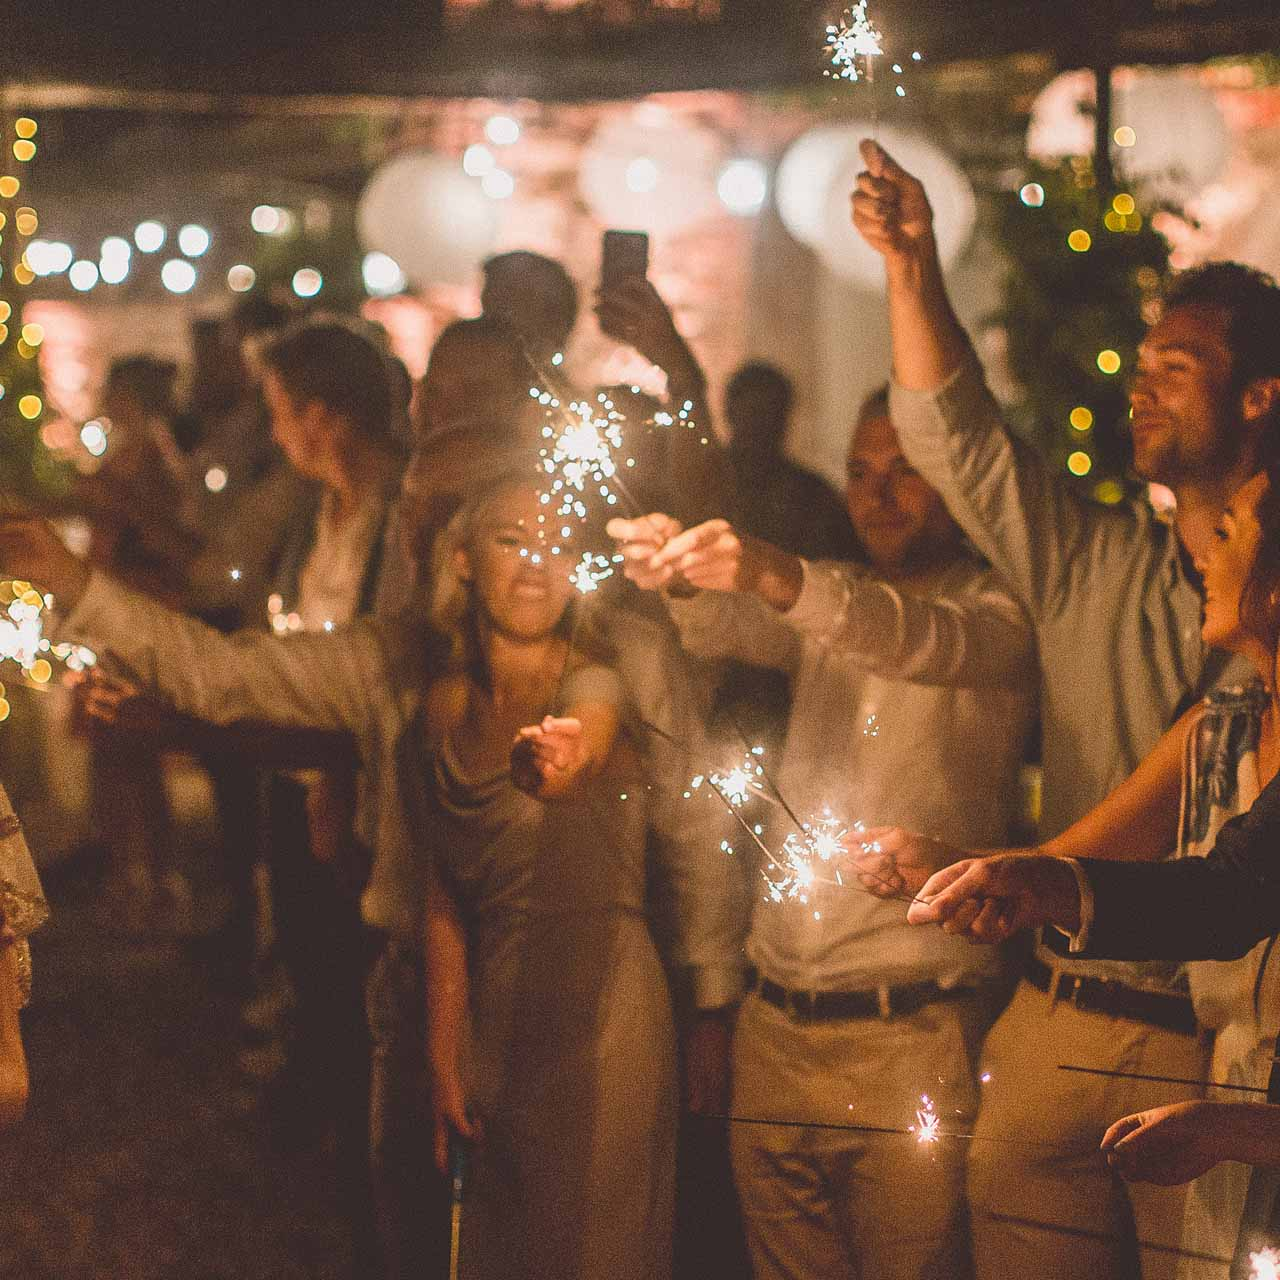 Wedding Send Off Sparklers - Pack Of 5 – The Wedding of My Dreams